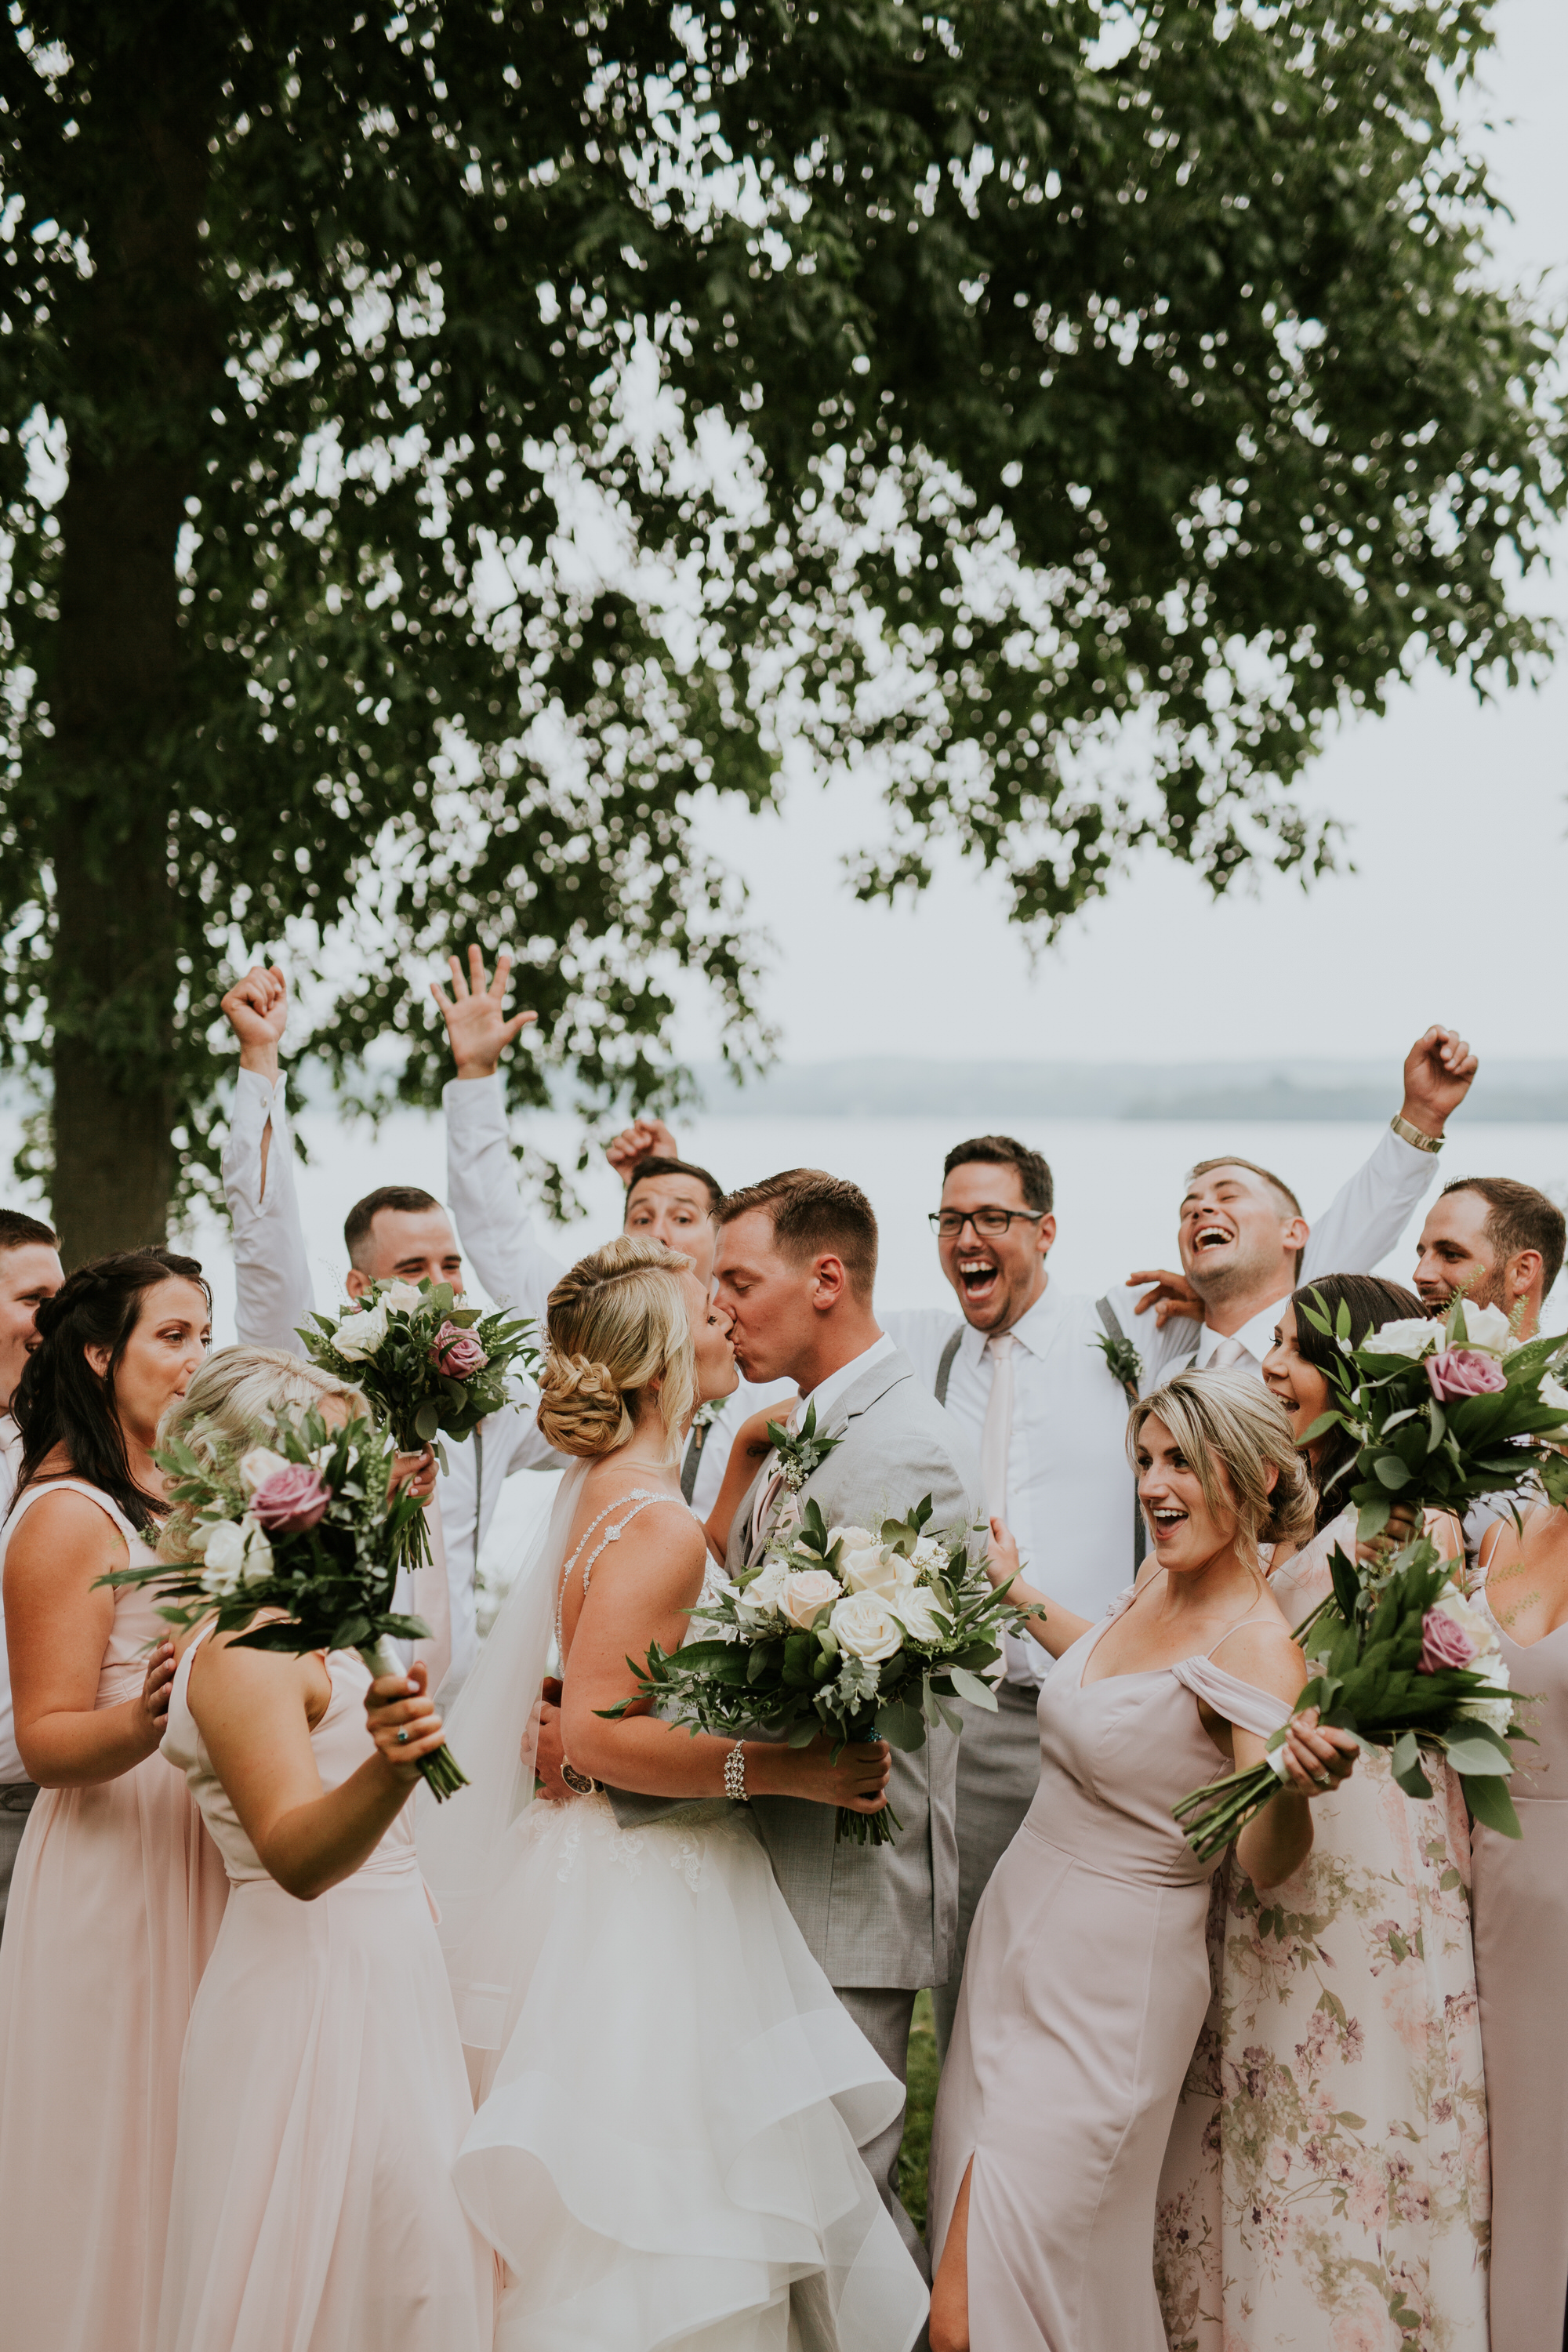 Elmhirst Resort Wedding - Bridal party kissing portrait